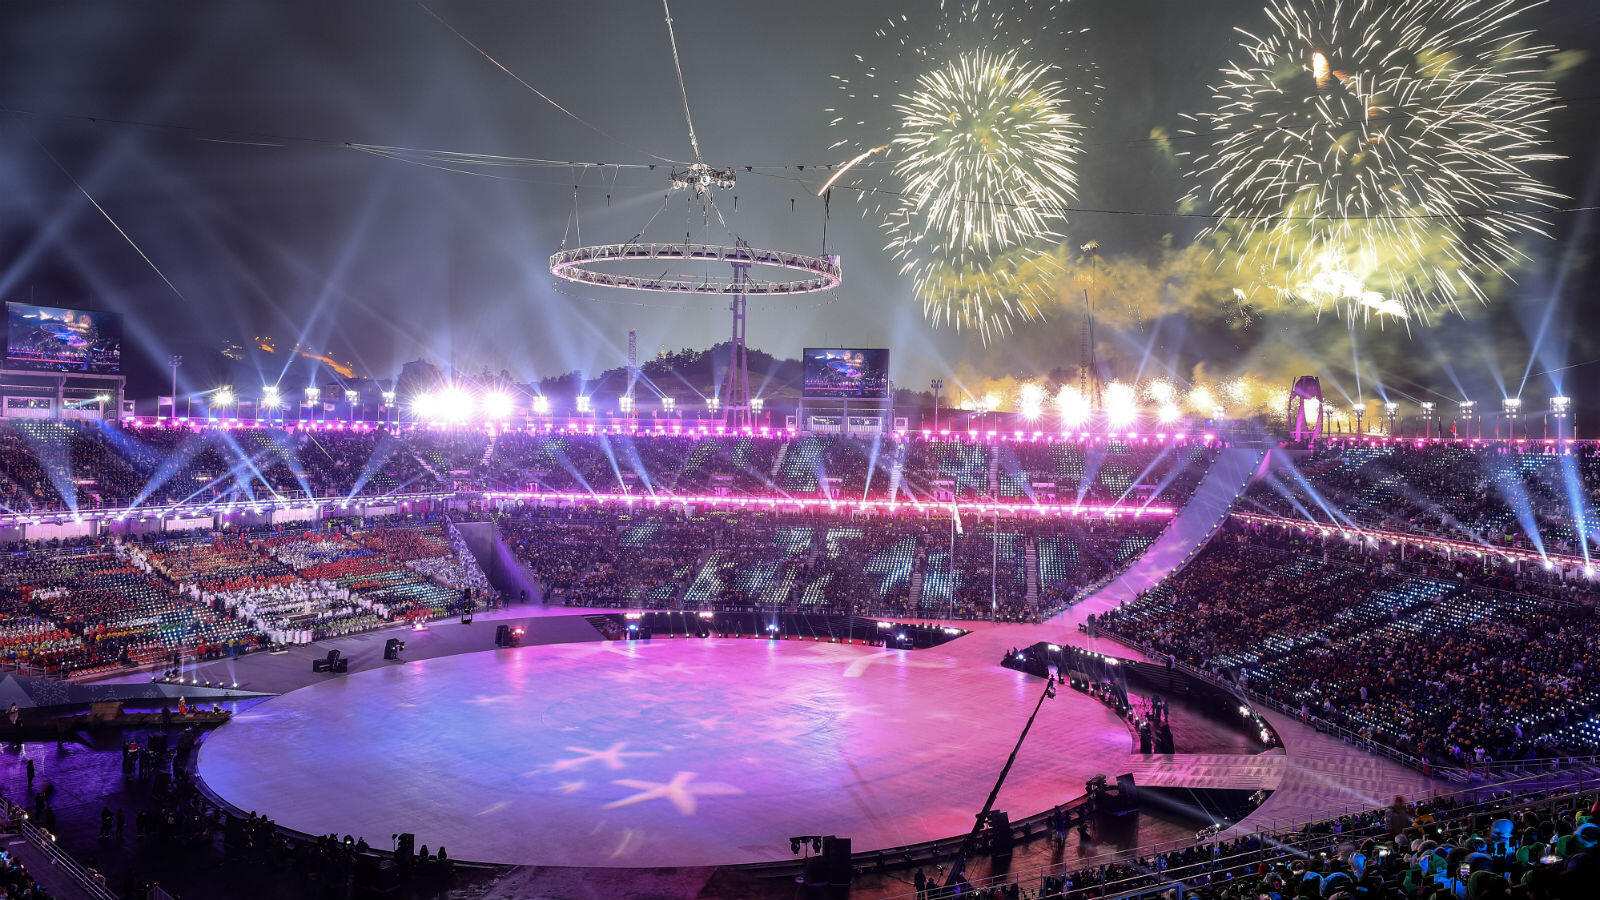 South Korea's flagship ski resort in Pyeongchang is hosting the 2018 Winter Olympics, 15 days of competition that opened with an impressive ceremony.